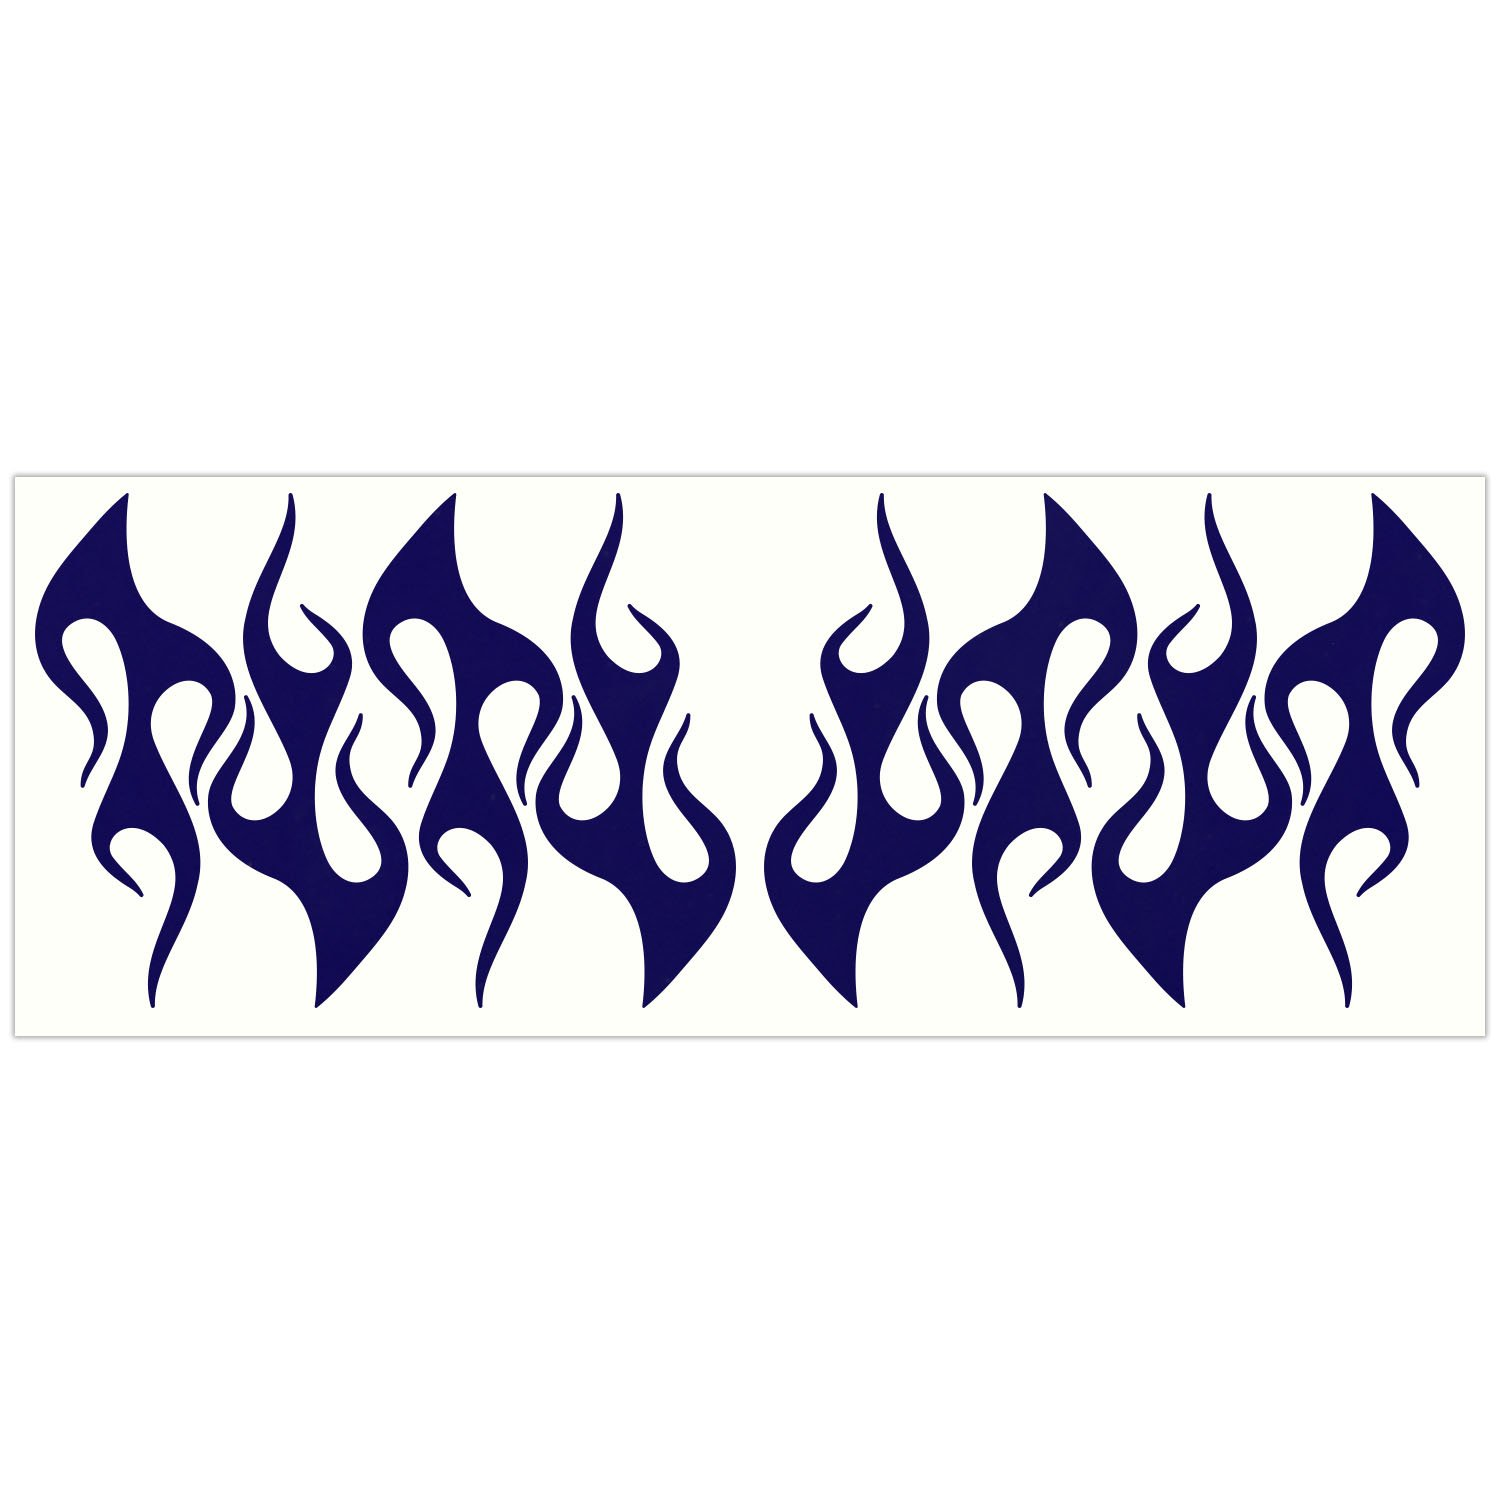 Pack of 8 Bicycles Wheelchairs and More Strollers LiteMark Reflective 4 Inch Flames Sticker Decals for Helmets